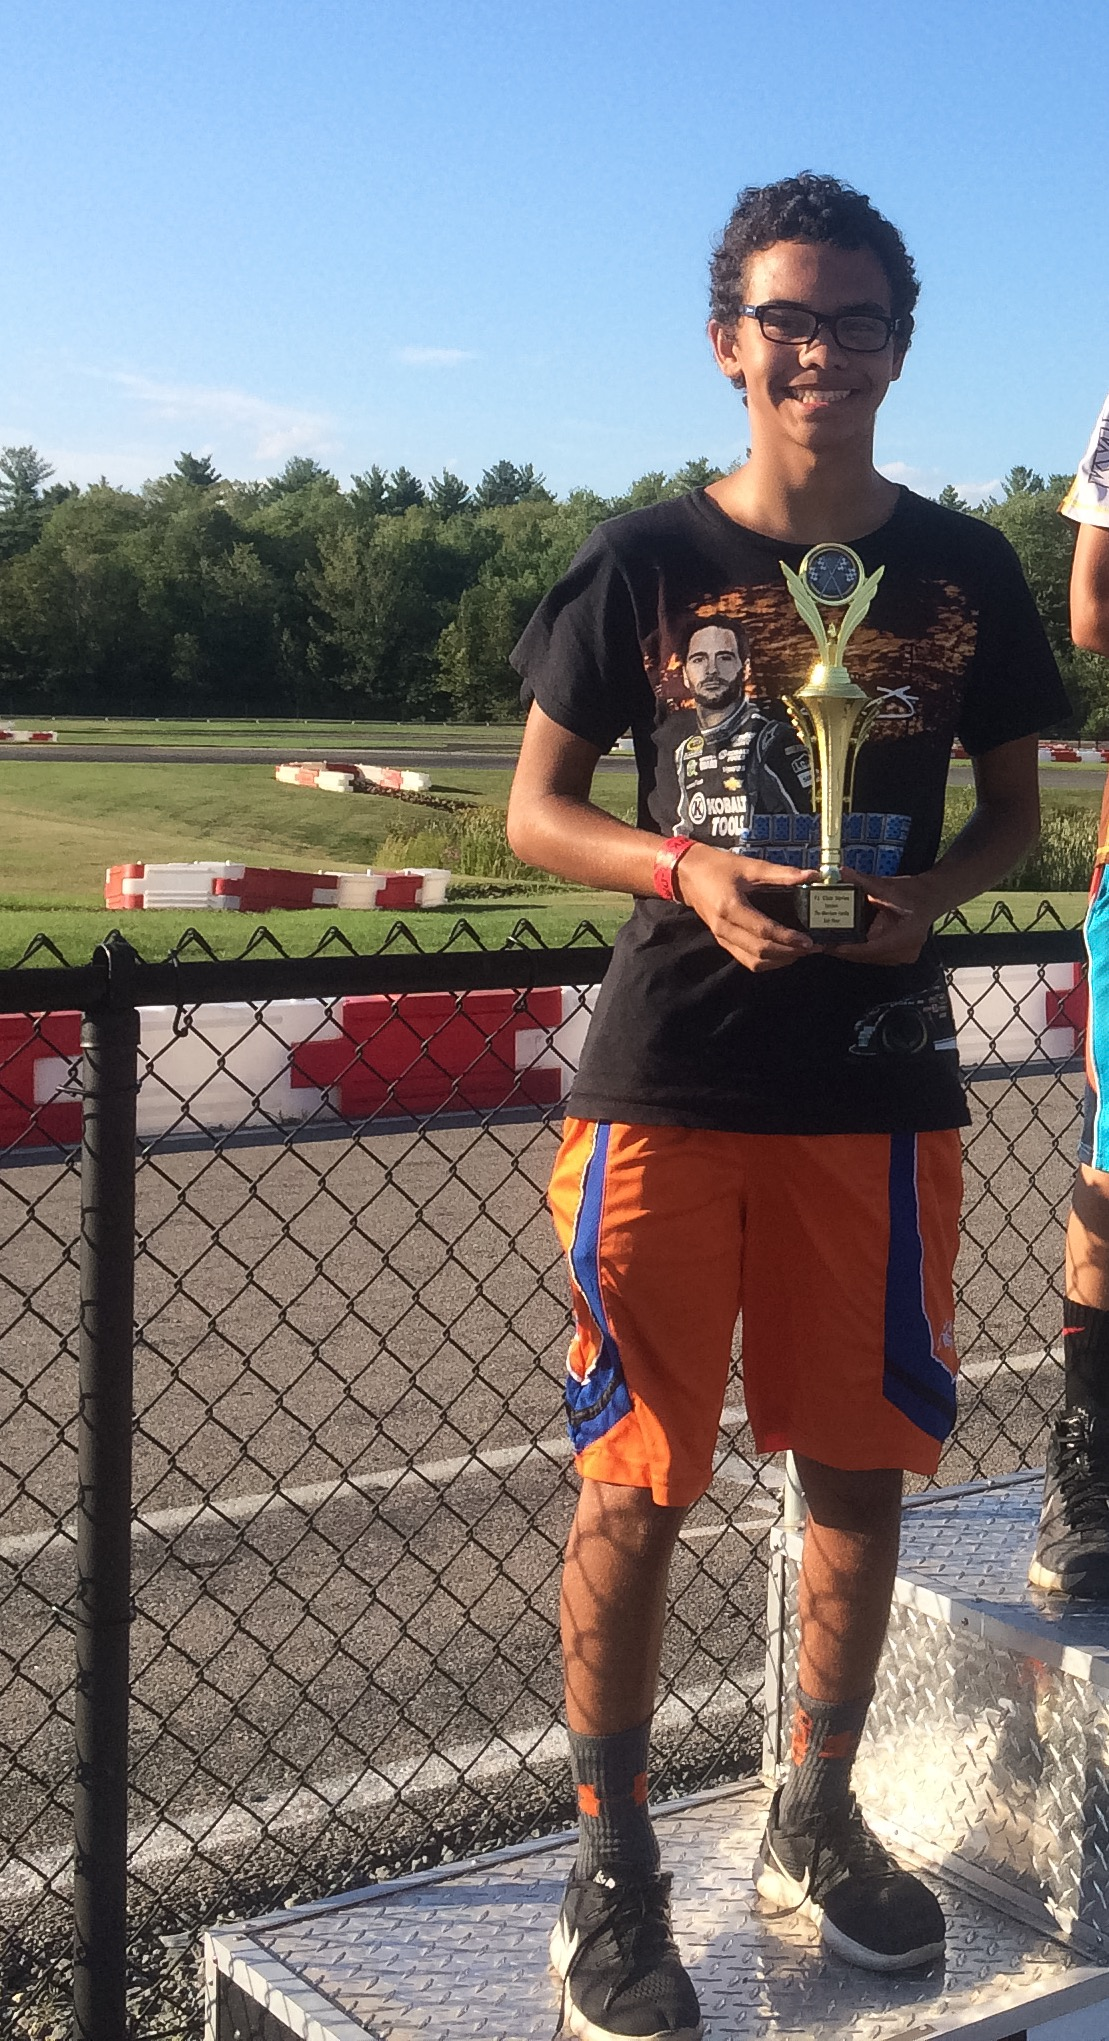 Blake finishes the Day in Second Place in Race #5 of F1Outdoors Club Racing Cadet League in East Bridgewater on Sunday August 14